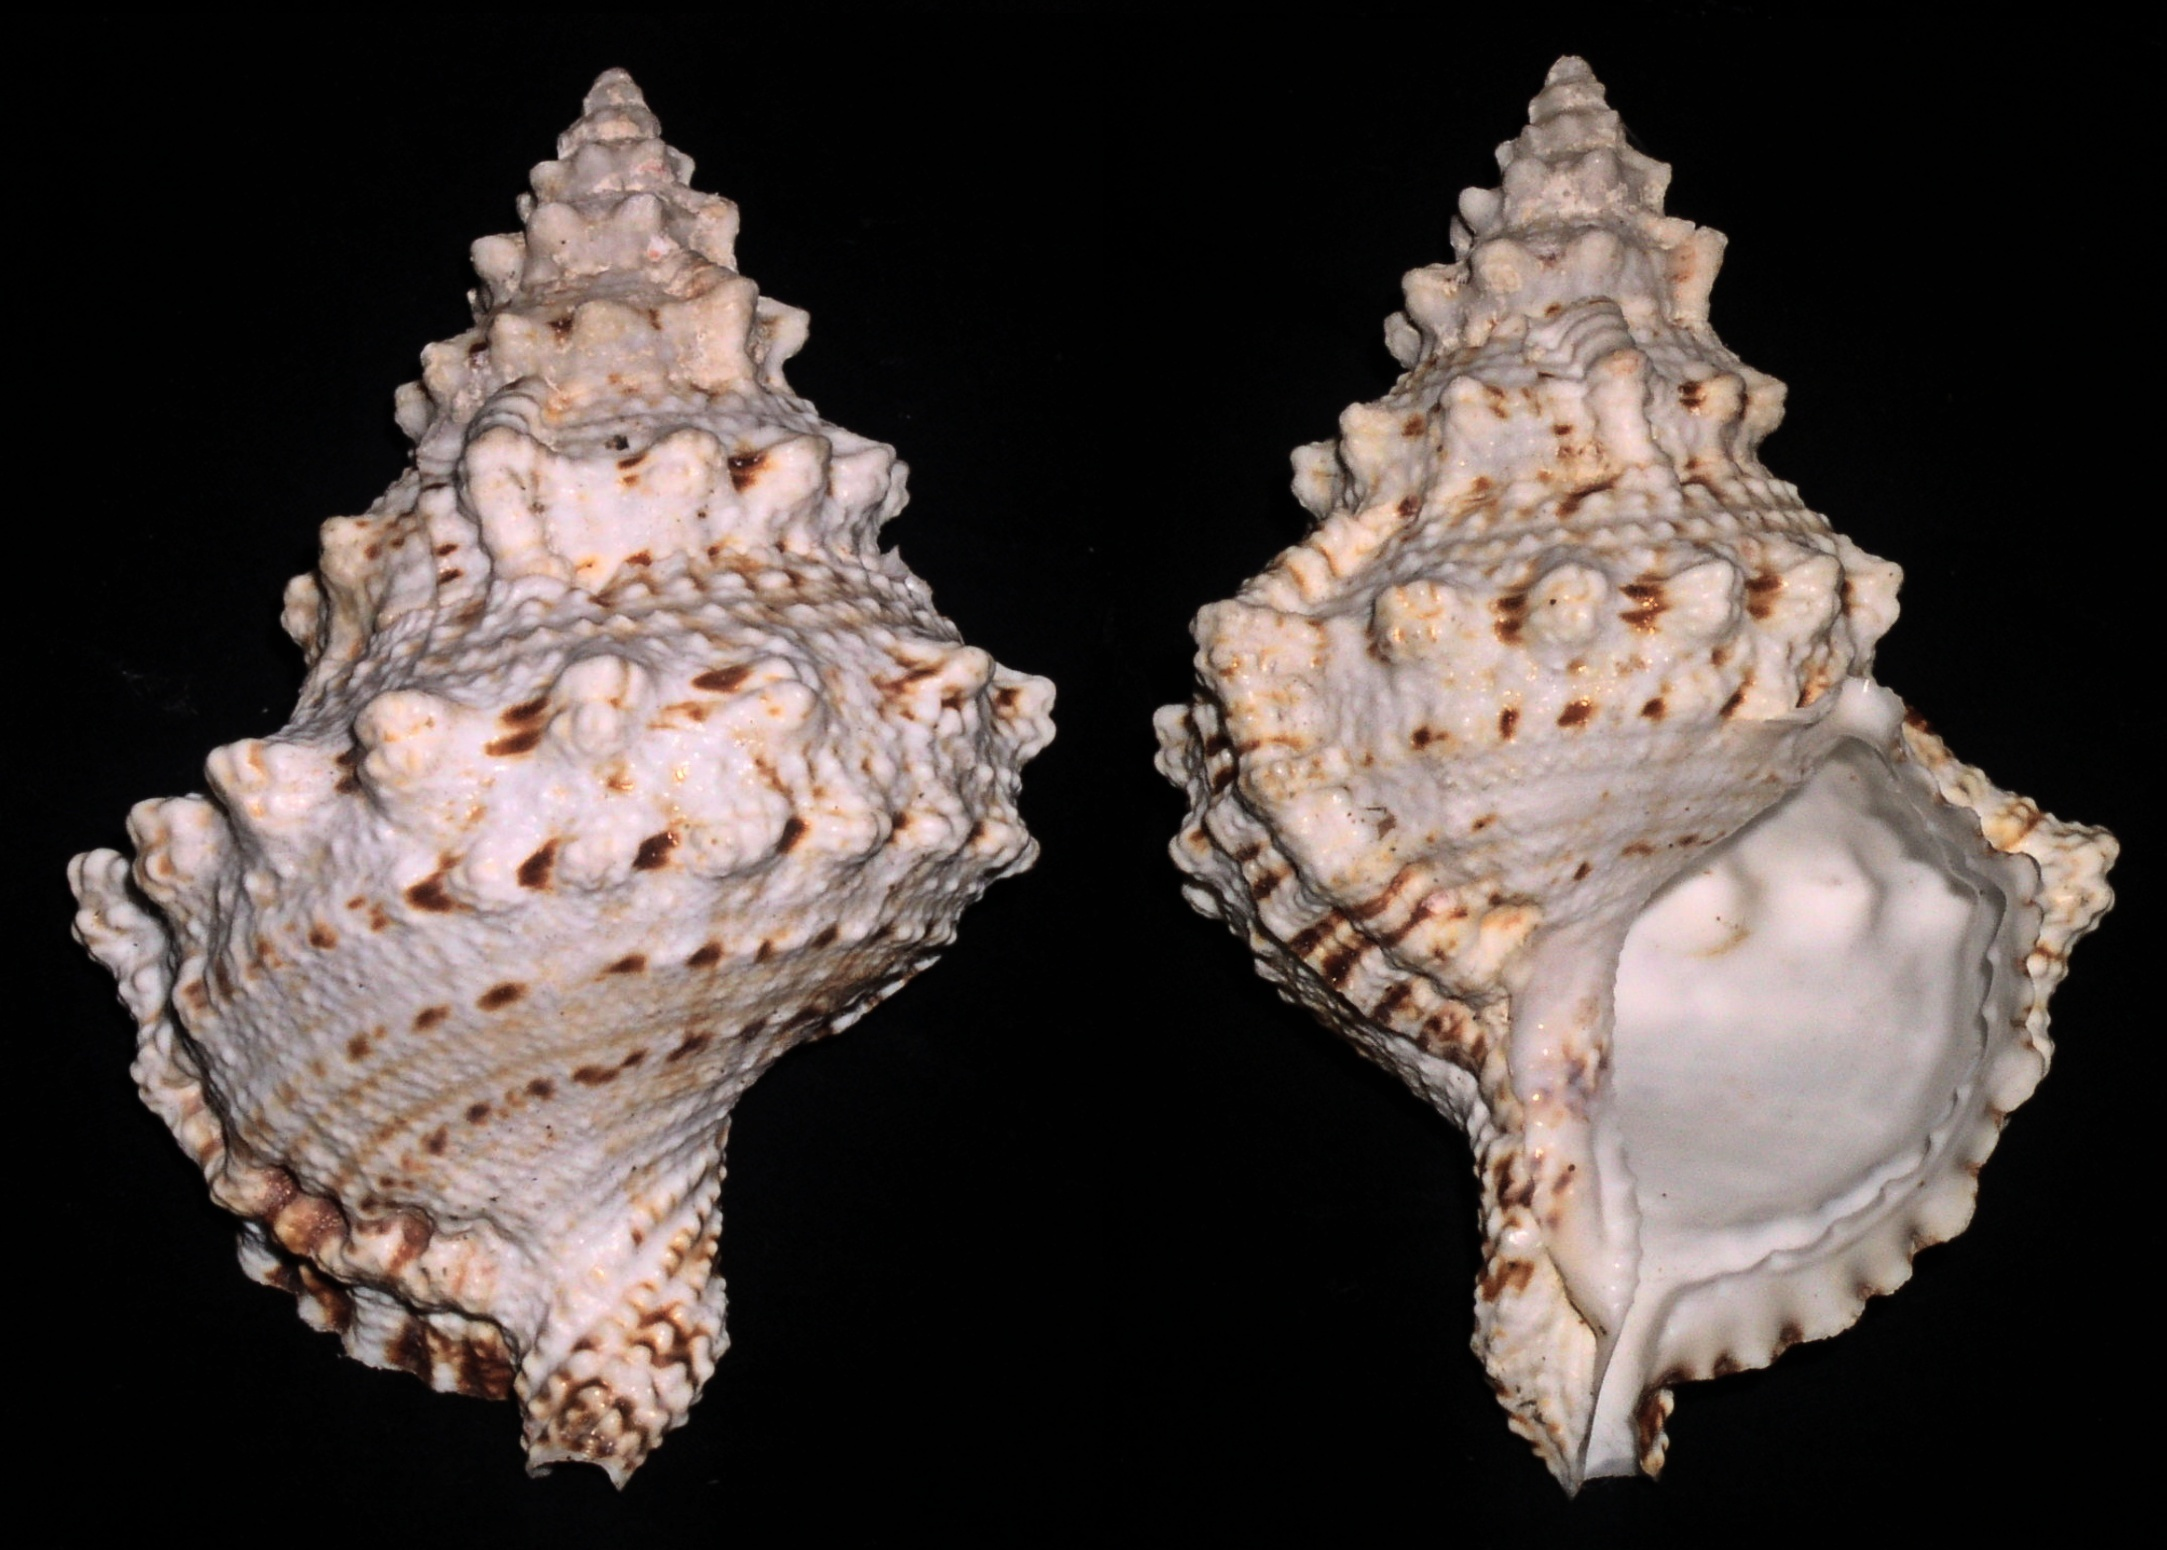 Image of giant frogsnail